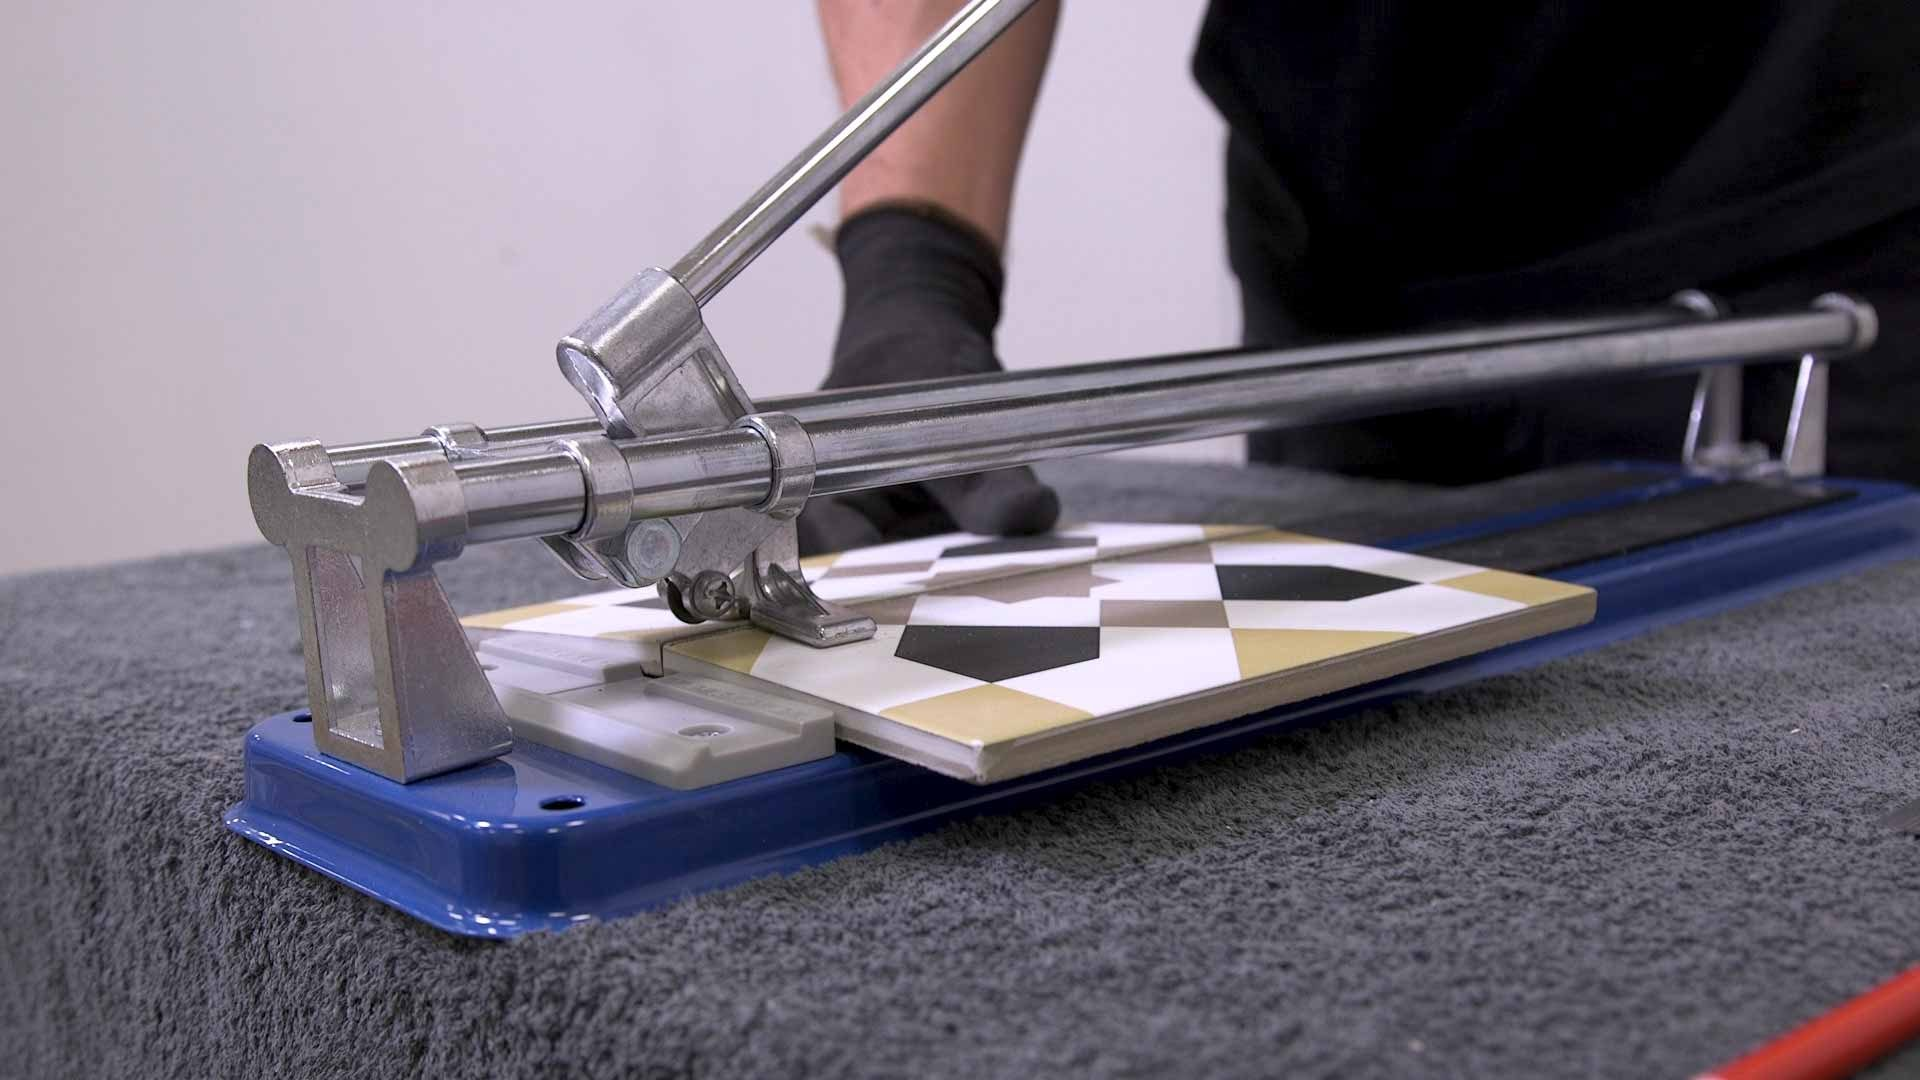 How to cut tiles 2